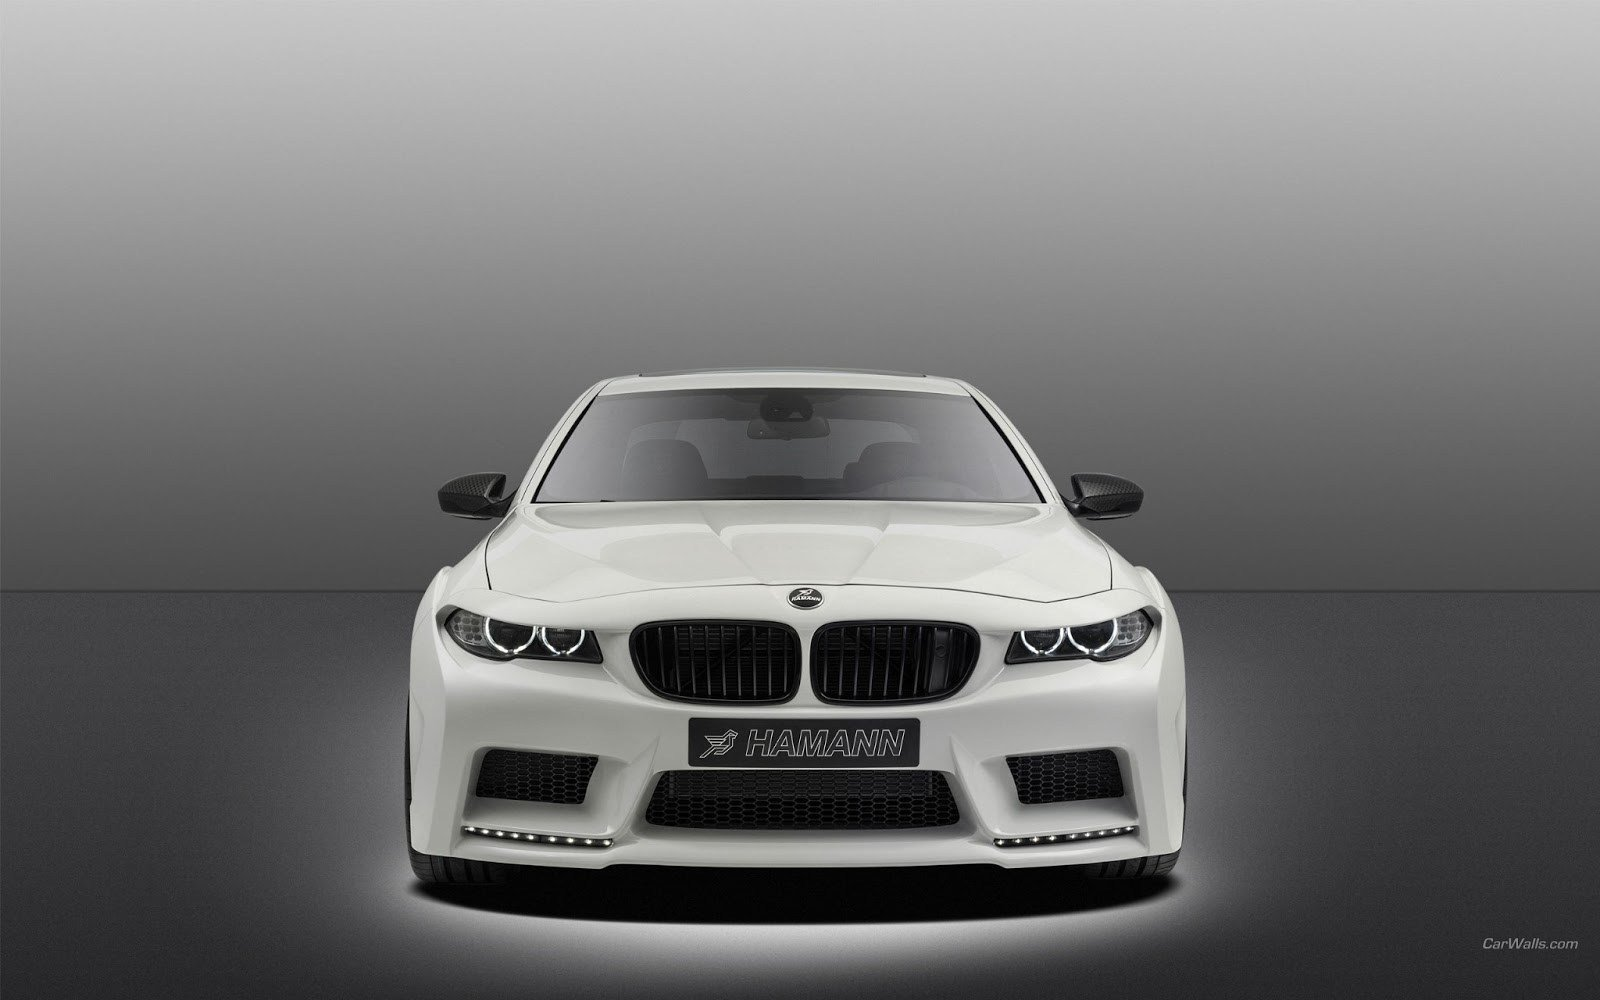 Latest Car Wallpaper Full Hd Bmw M5 Mission By Hamann 2013 13 Free Download